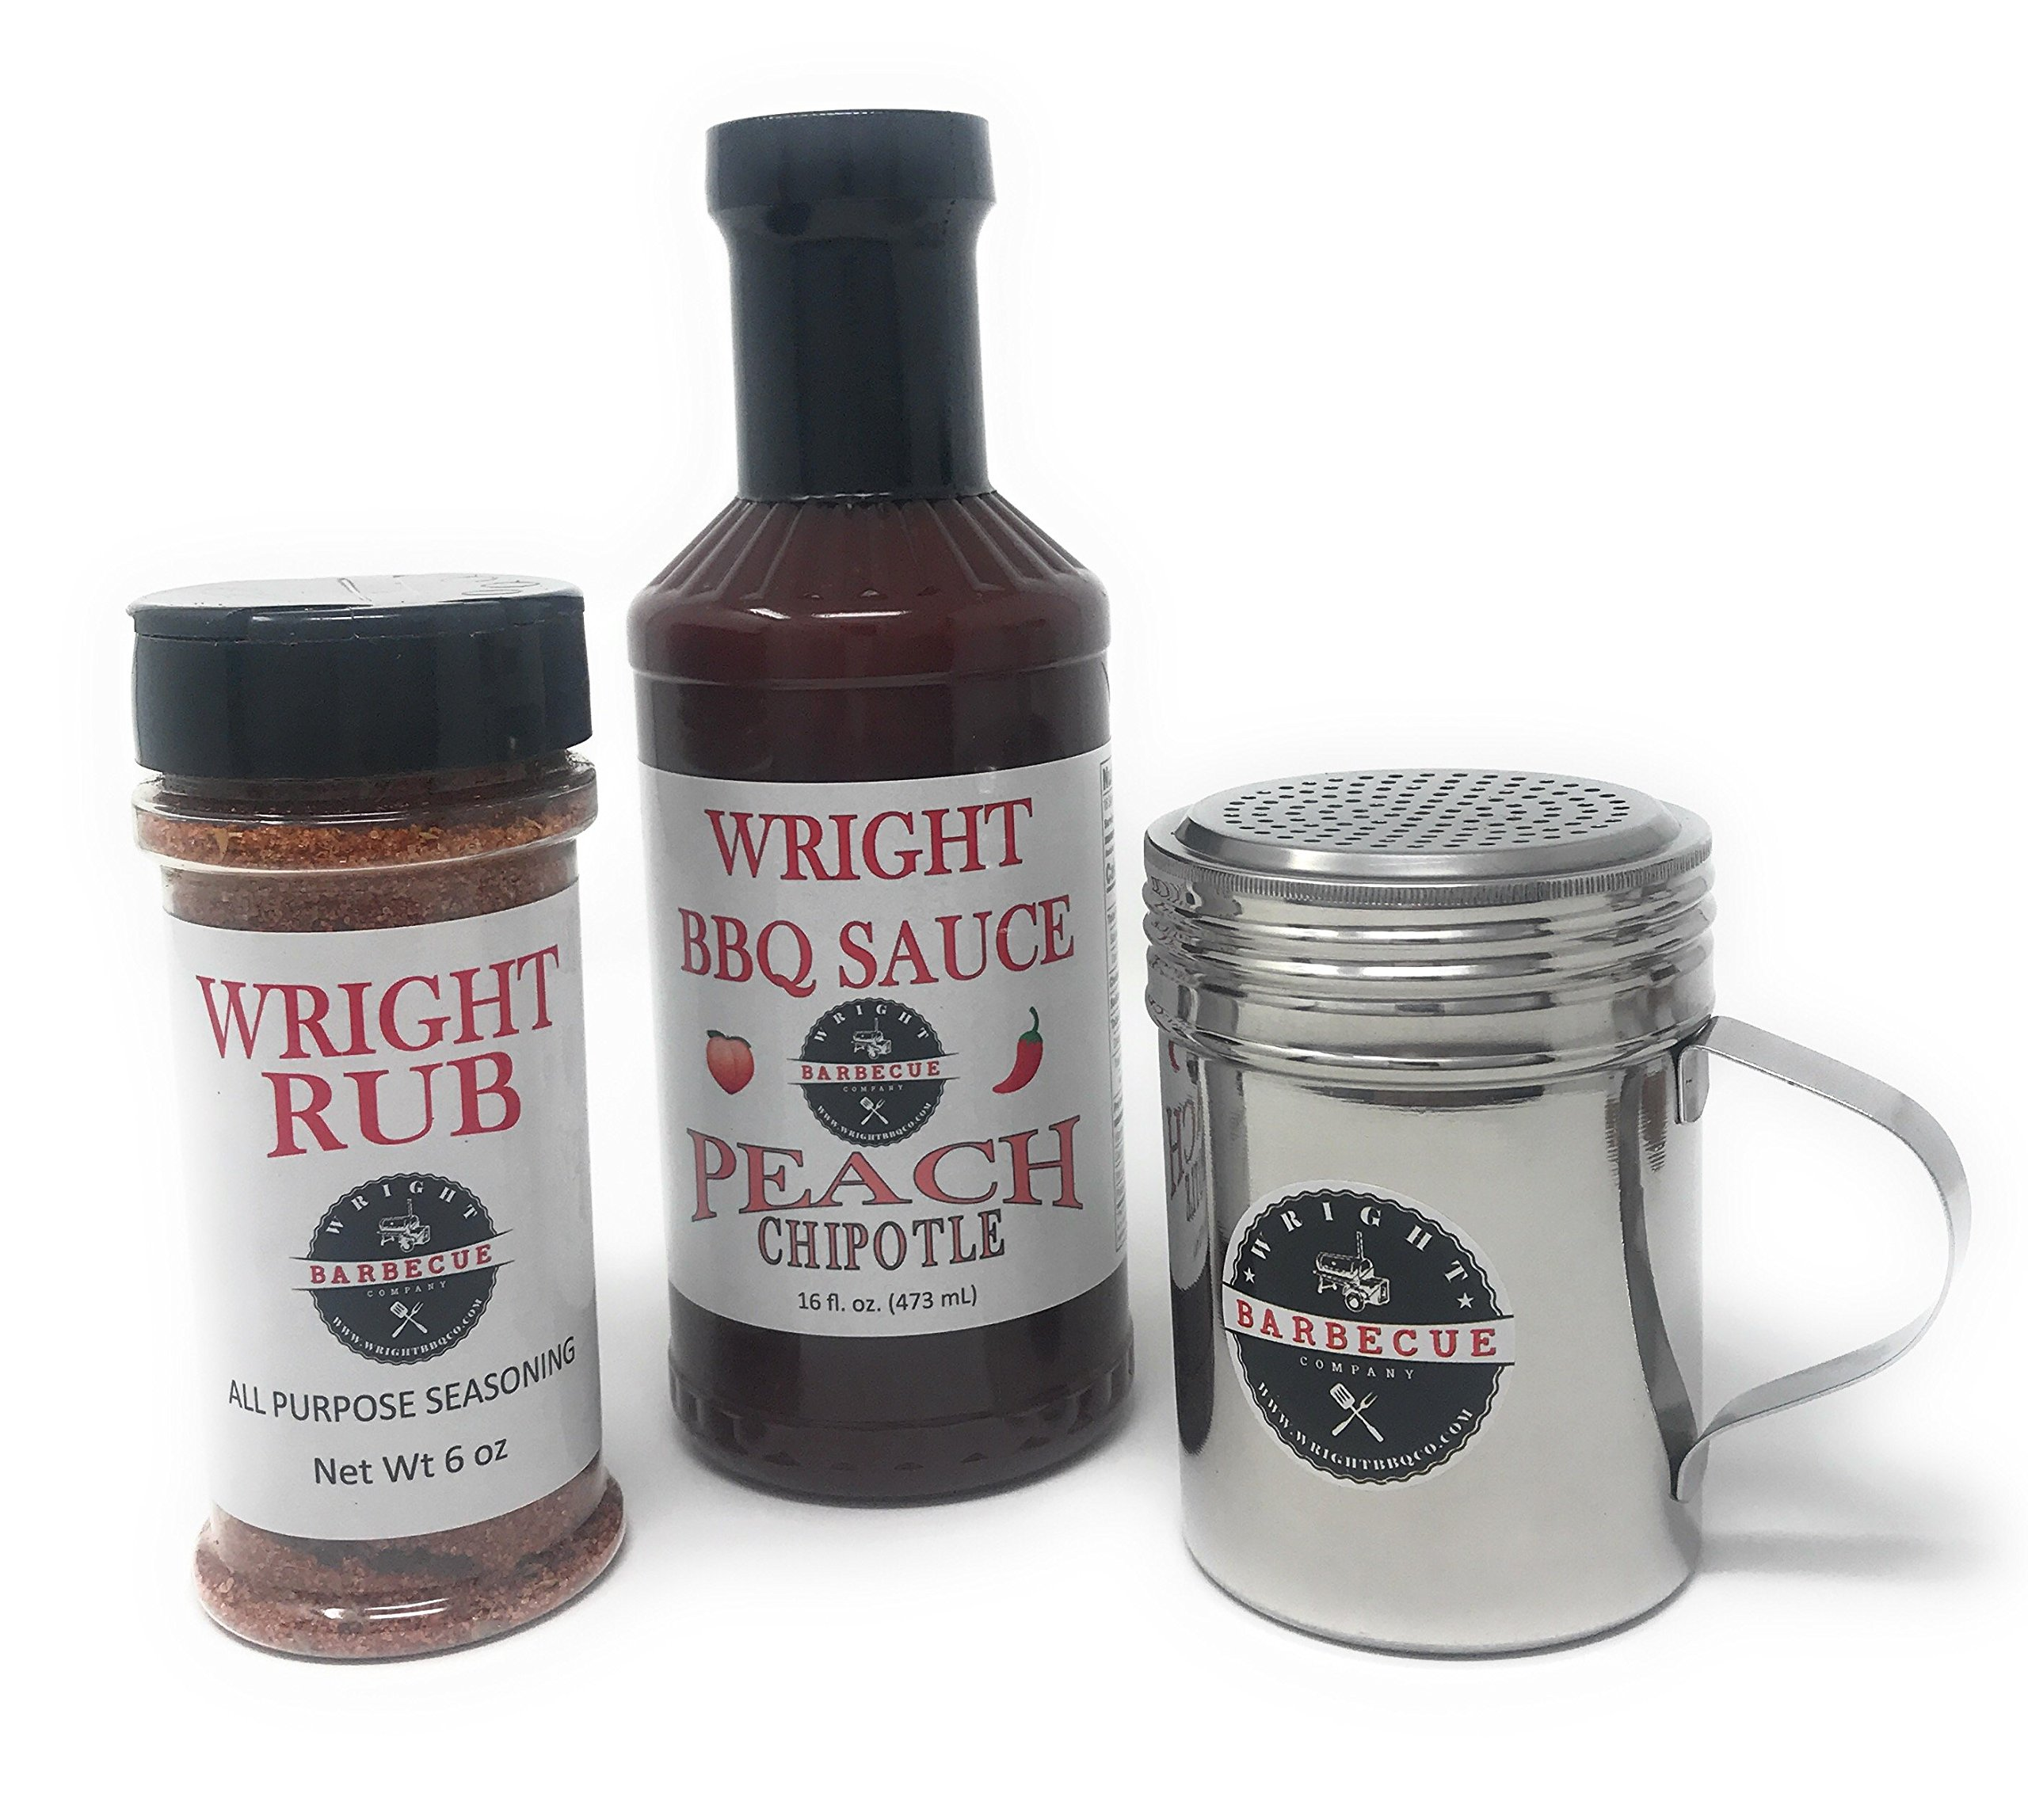 Wright BBQ Company - Peach Chipotle Barbecue Sauce and All Purpose Seasoning Starter Kit (3 Items)